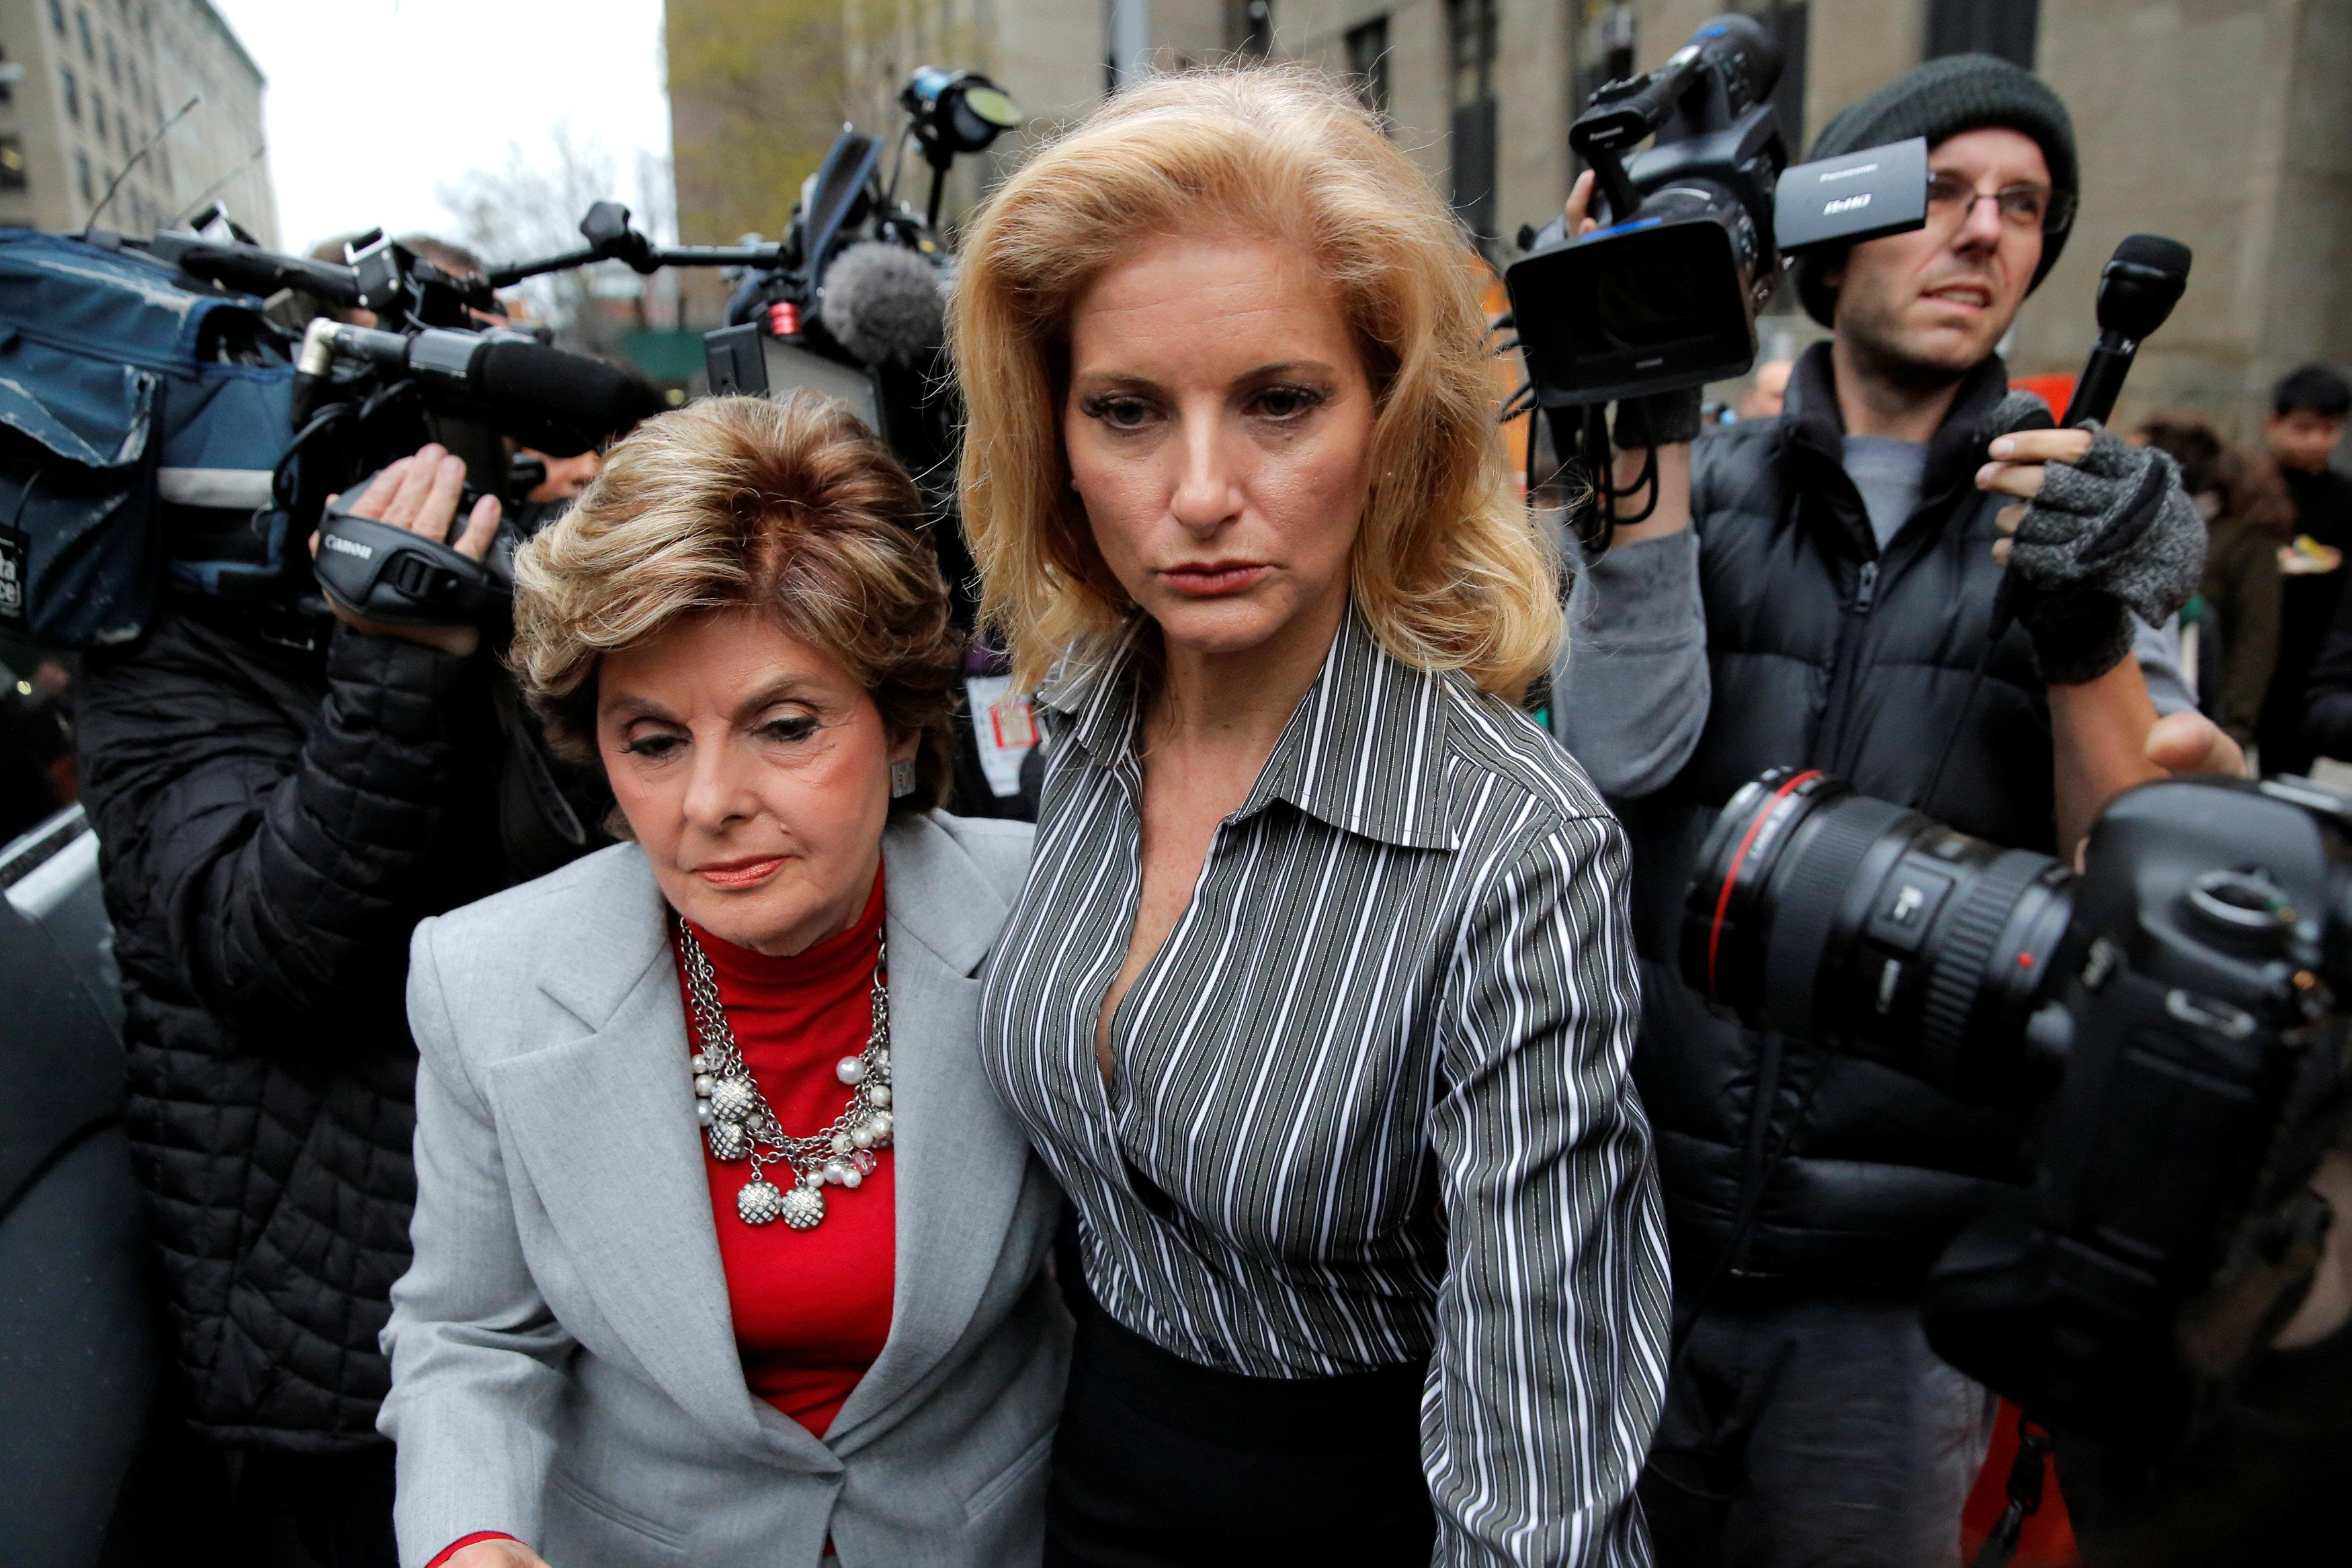 Summer Zervos, a former contestant on The Apprentice, leaves New York State Supreme Court with attorney Gloria Allred (L) after a hearing on the defamation case against U.S. President Donald Trump in Manhattan, New York City, U.S., December 5, 2017.  Andrew Kelly